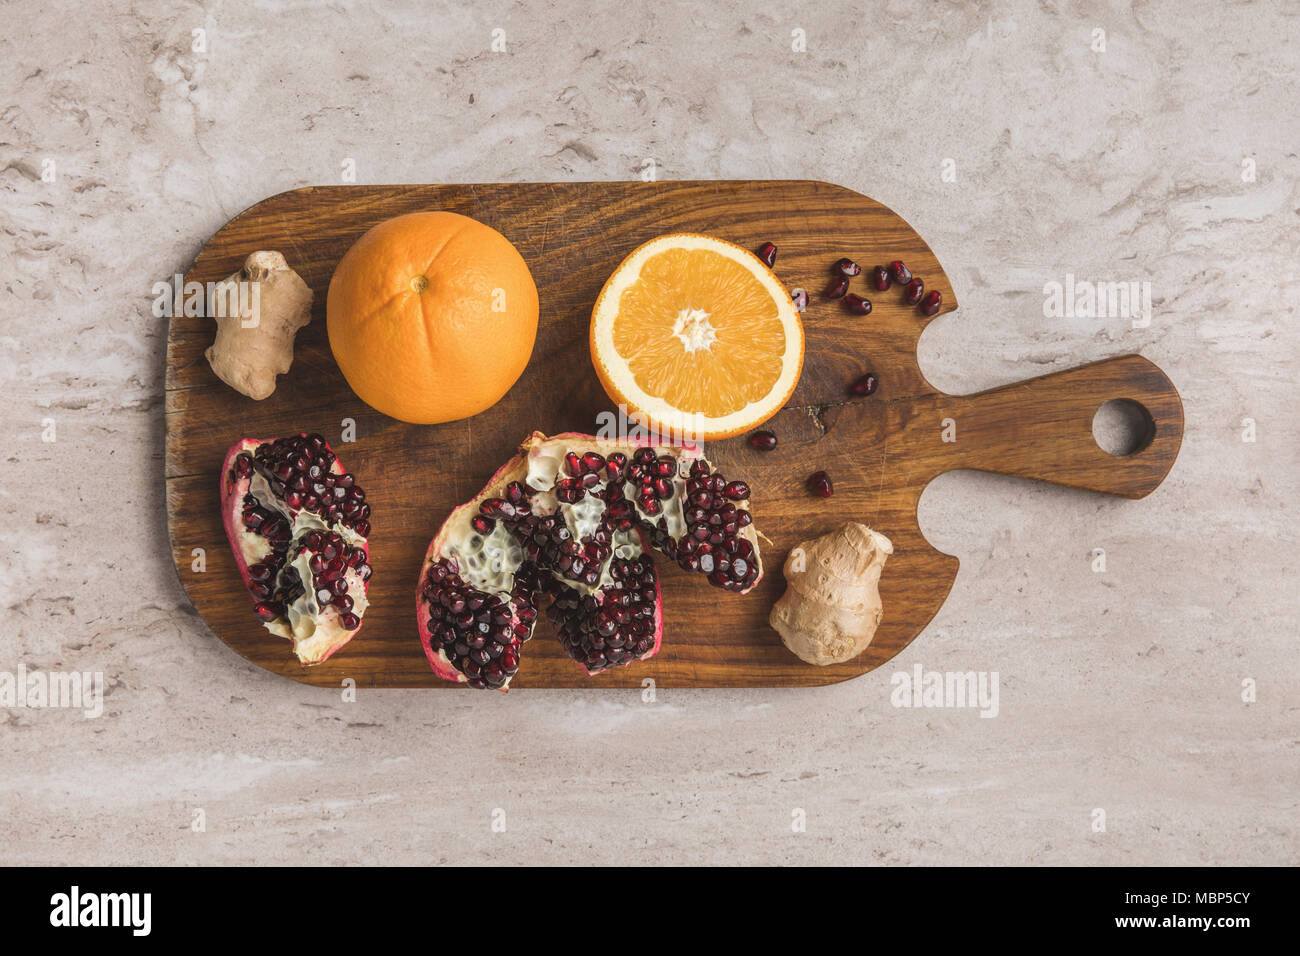 top view of oranges, pomegranate and ginger on cutting board  Stock Photo